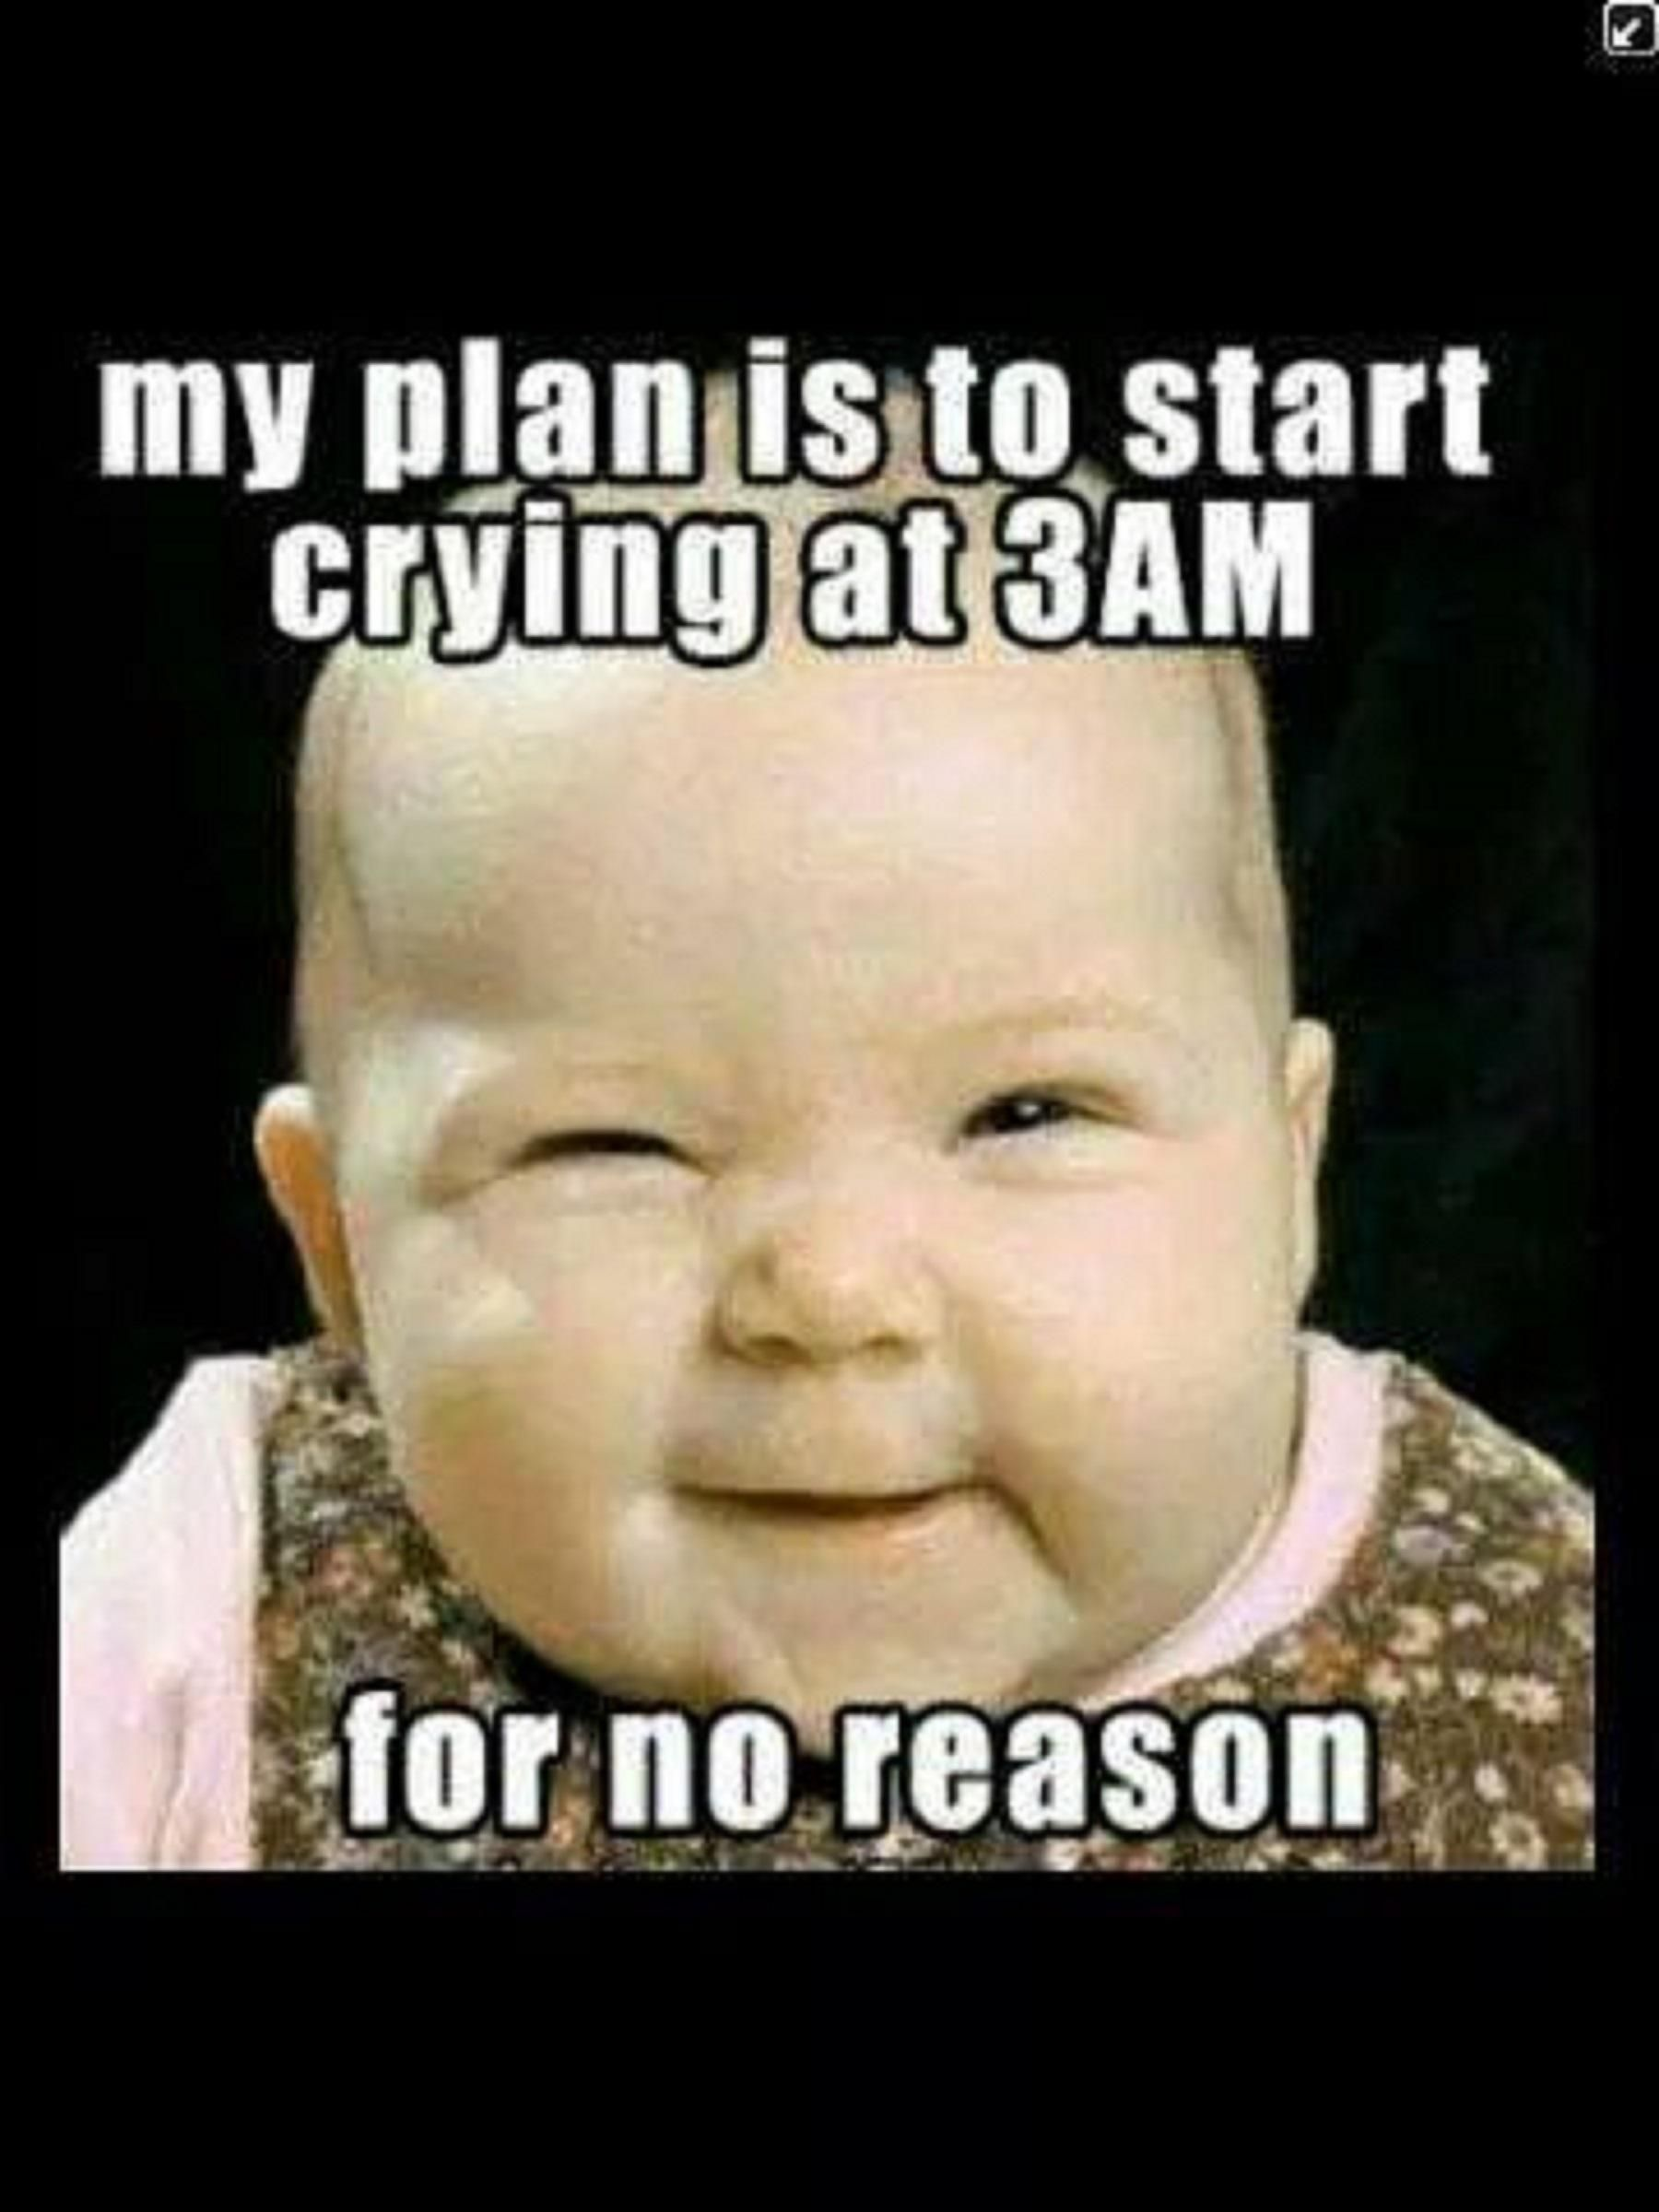 Funny Baby Pictures With Quotes : funny, pictures, quotes, Funny, Babies, Captions, Google, Search, Jokes,, Memes,, Jokes